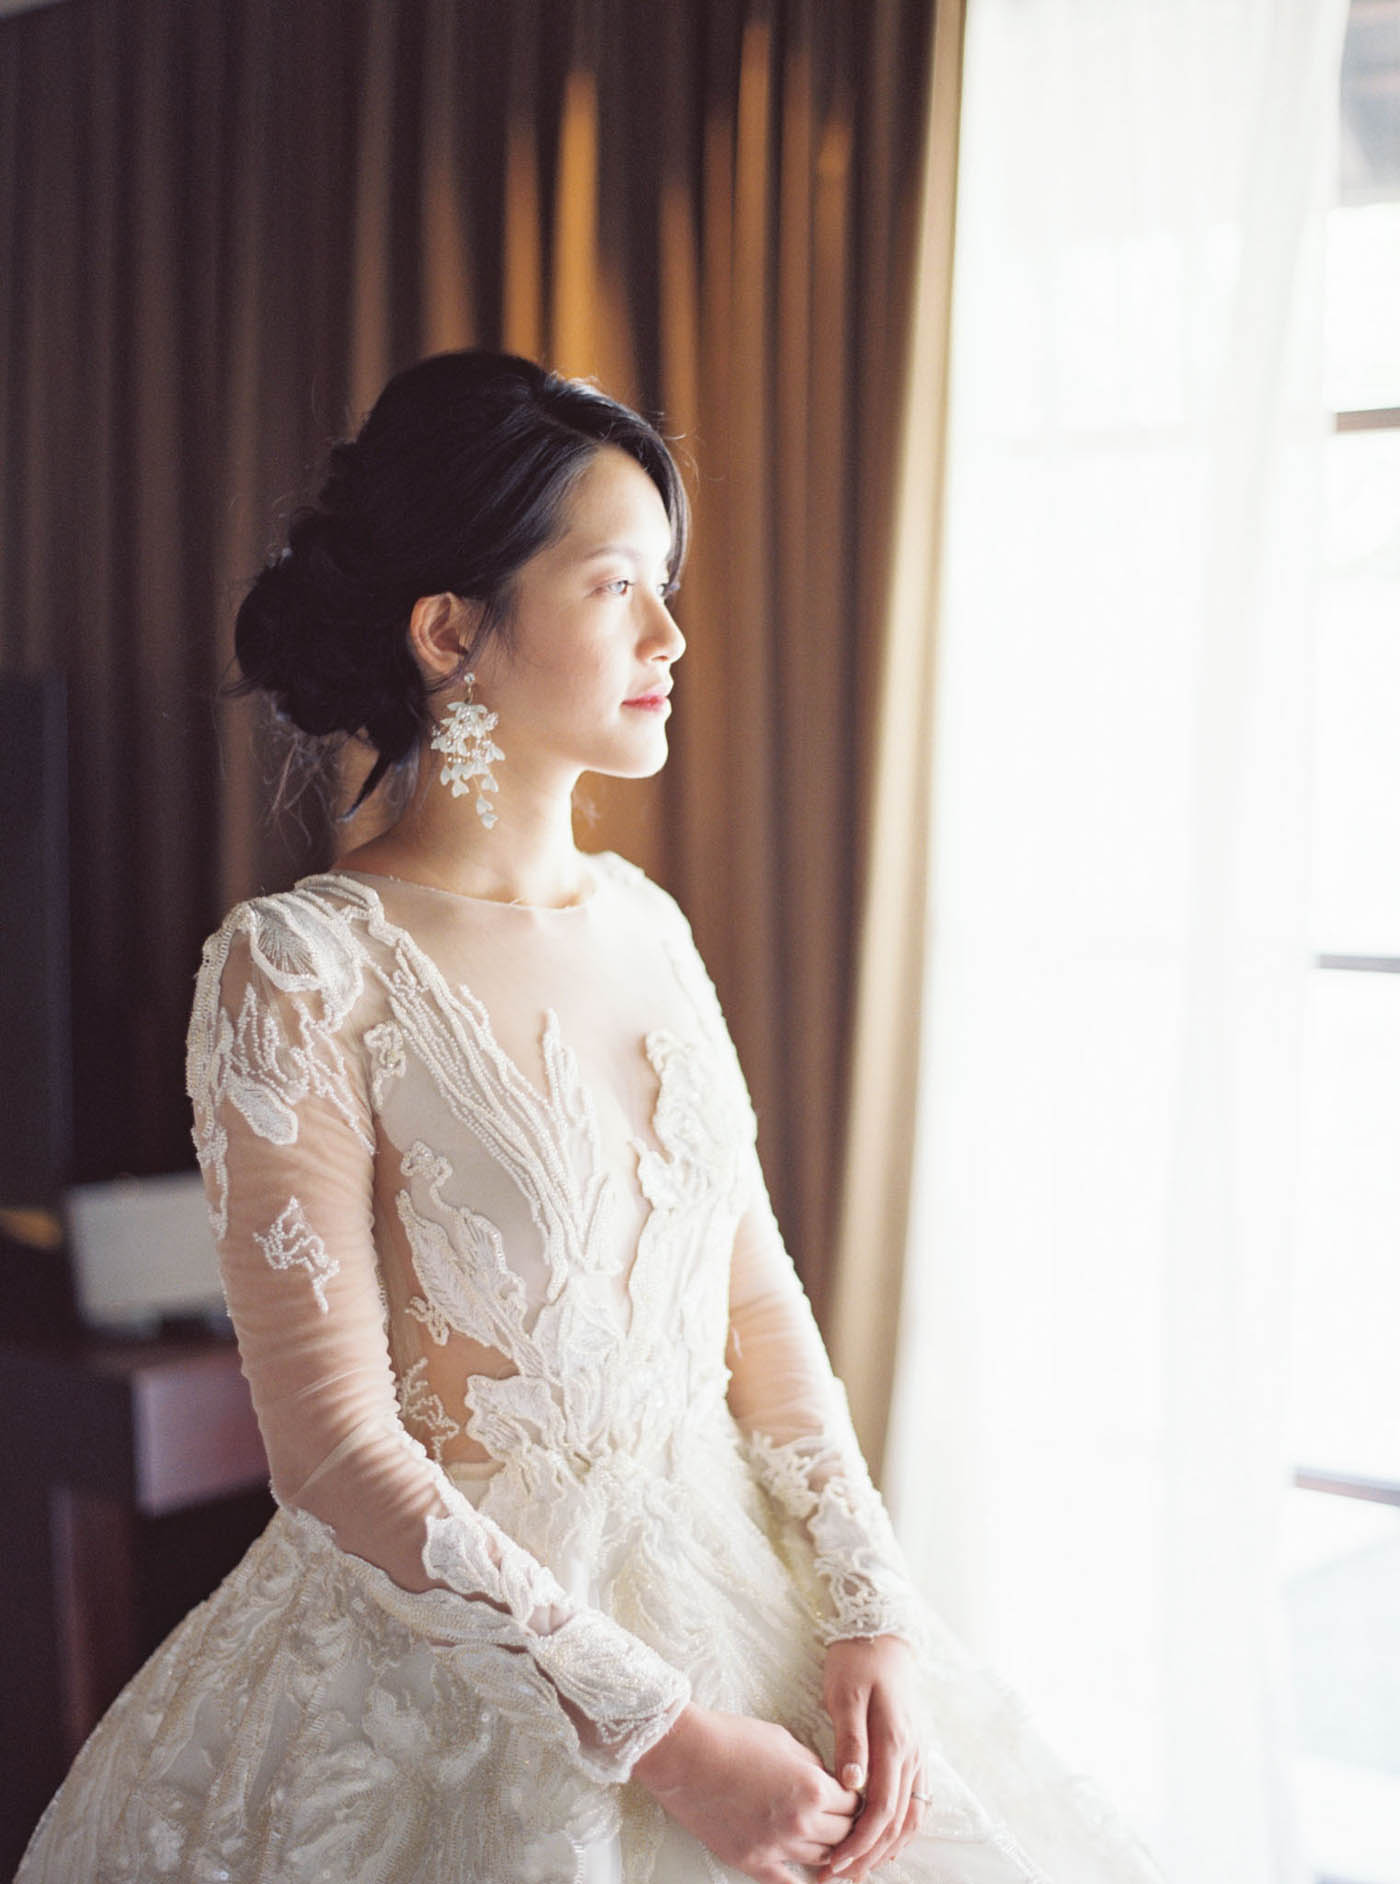 Royal Santrian Villa fine art wedding 峇里島婚禮